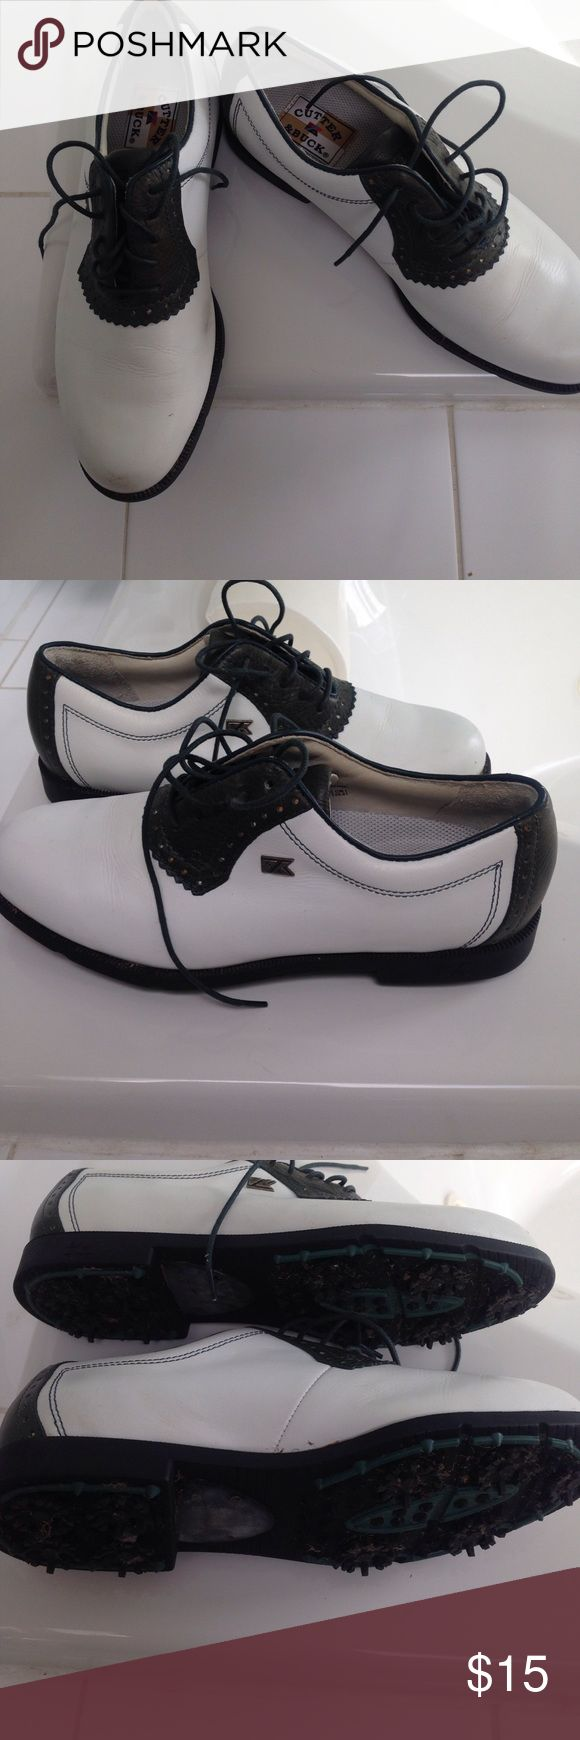 Golf shoes Very nice black and white golf shoes.   Worn twice. Cutter & Buck Shoes Athletic Shoes